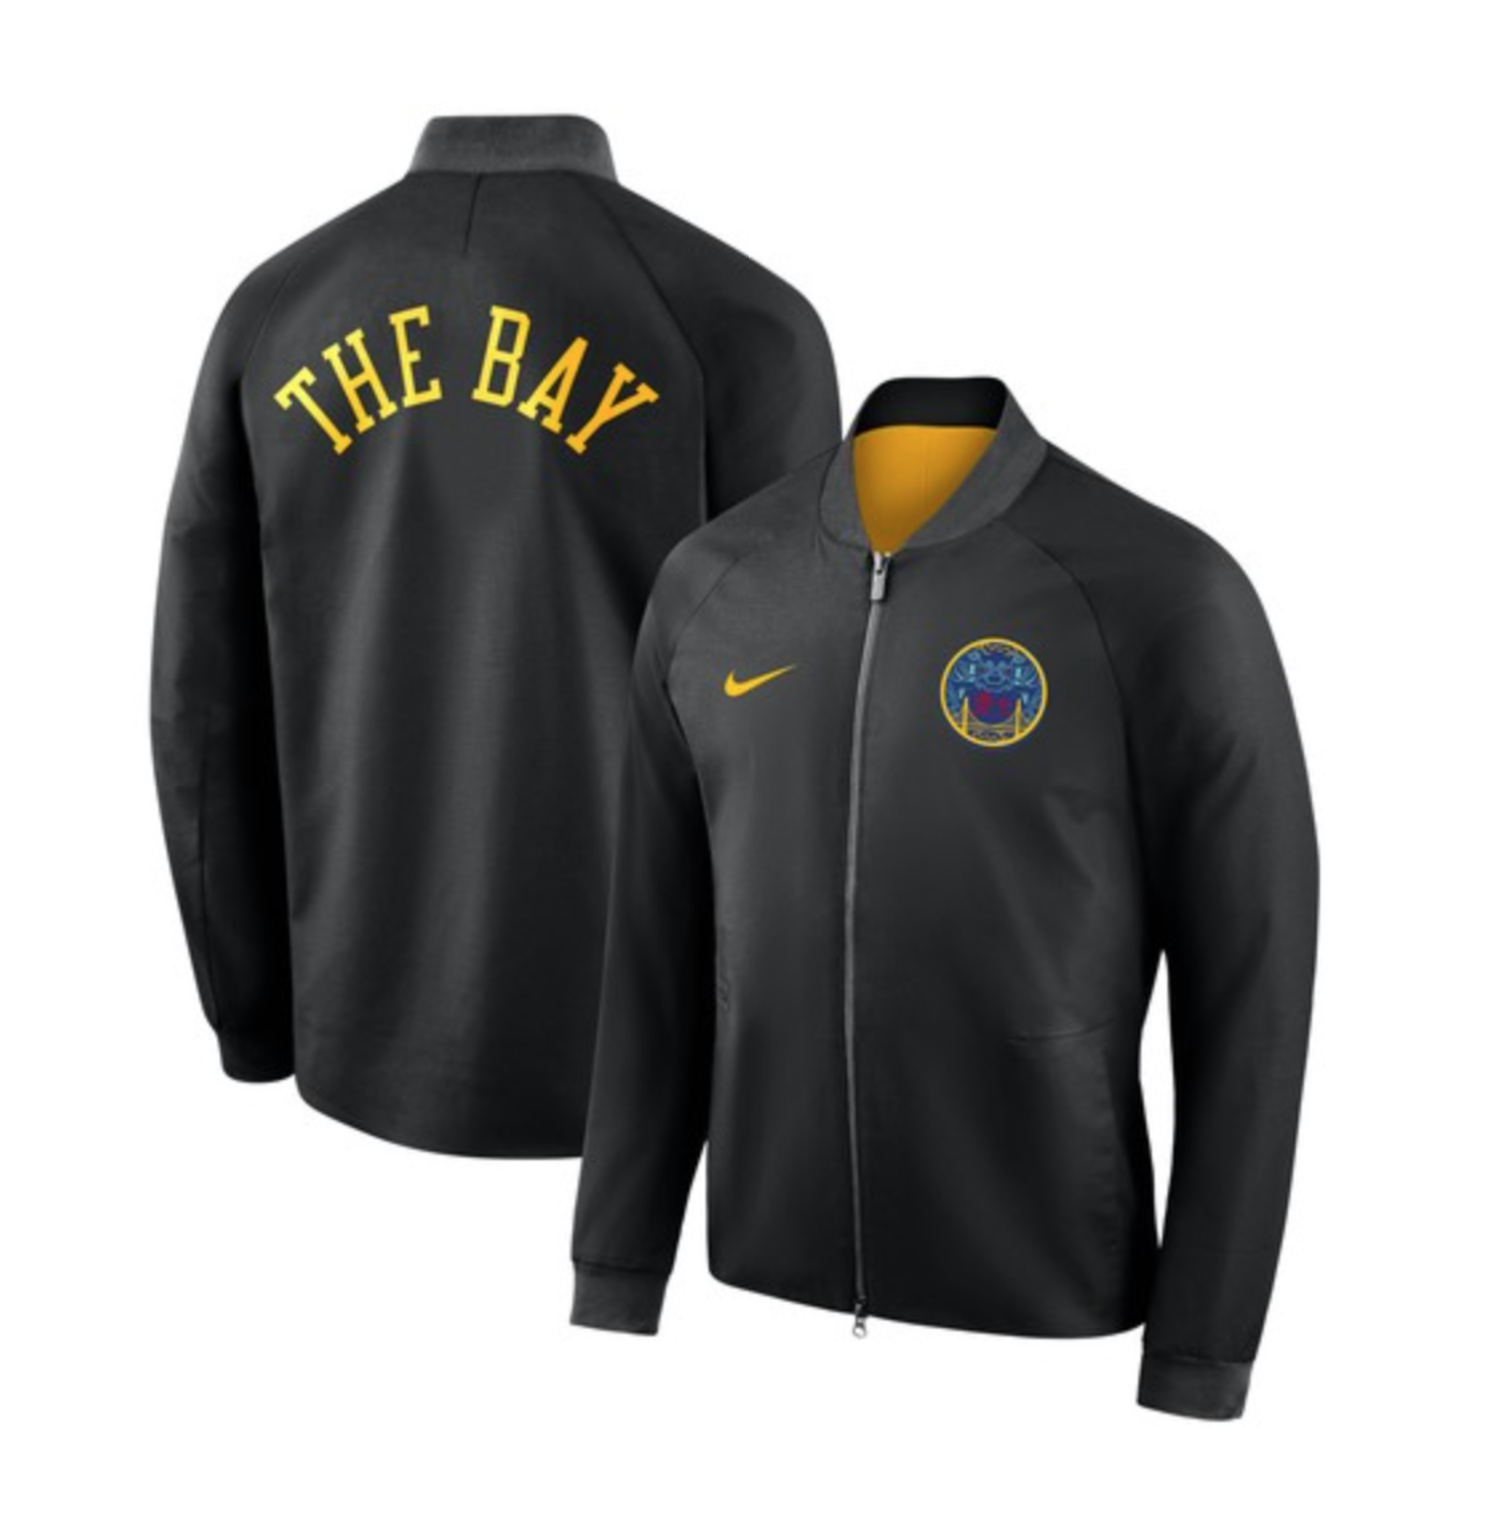 Nuevo modelo de la chaqueta de Golden State Warriors para la temporada  2018 19 e0f95932cd4